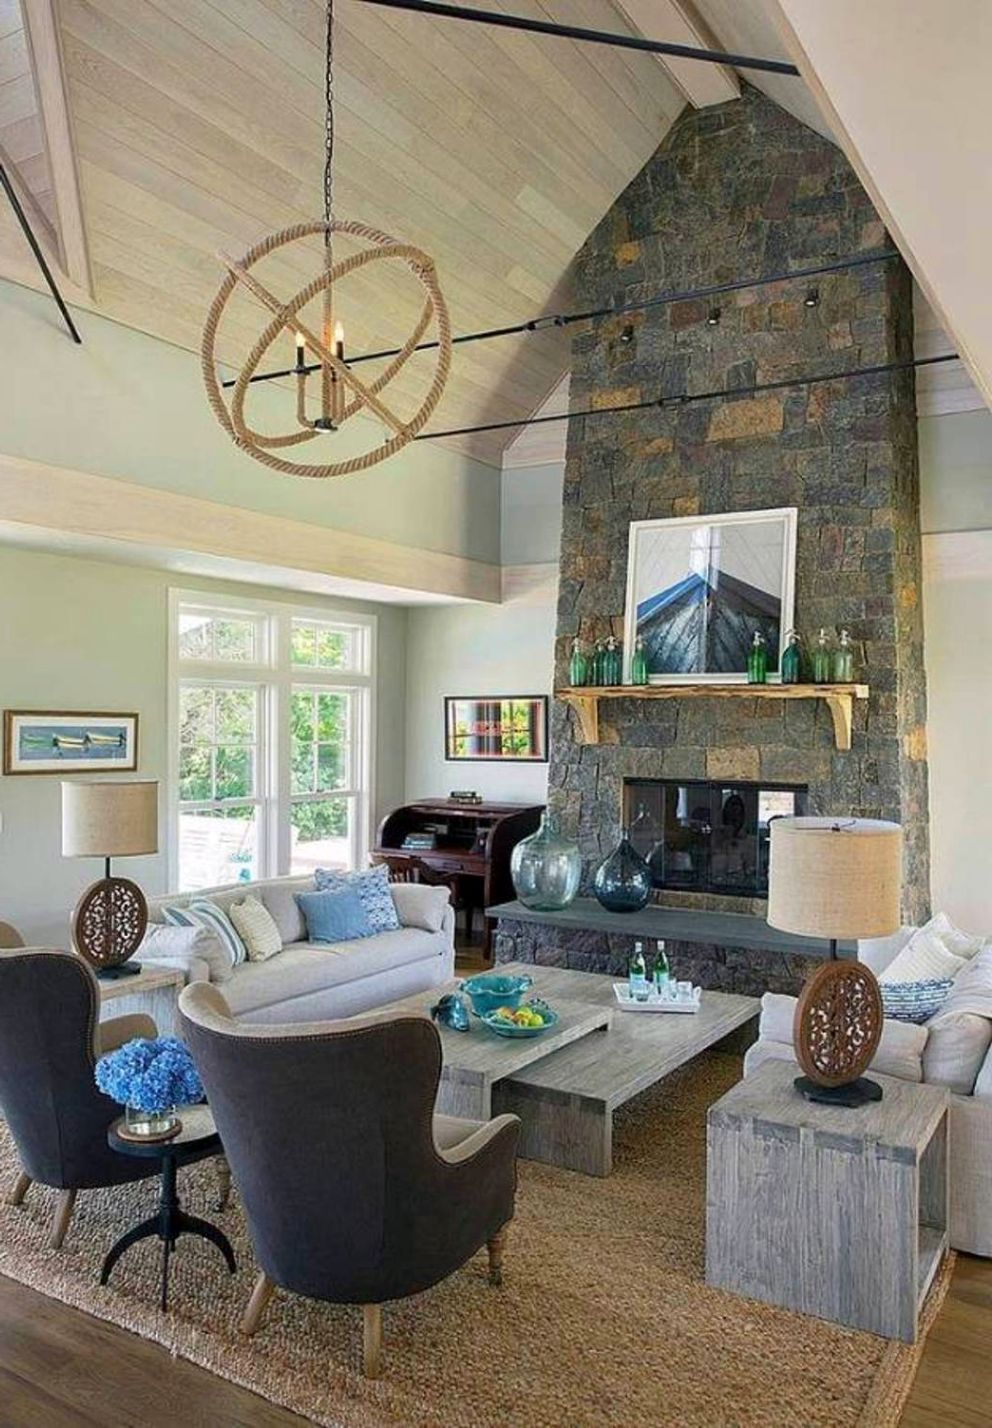 vaulted ceiling decorating ideas living room 16 most fabulous vaulted ceiling decorating ideas 25601